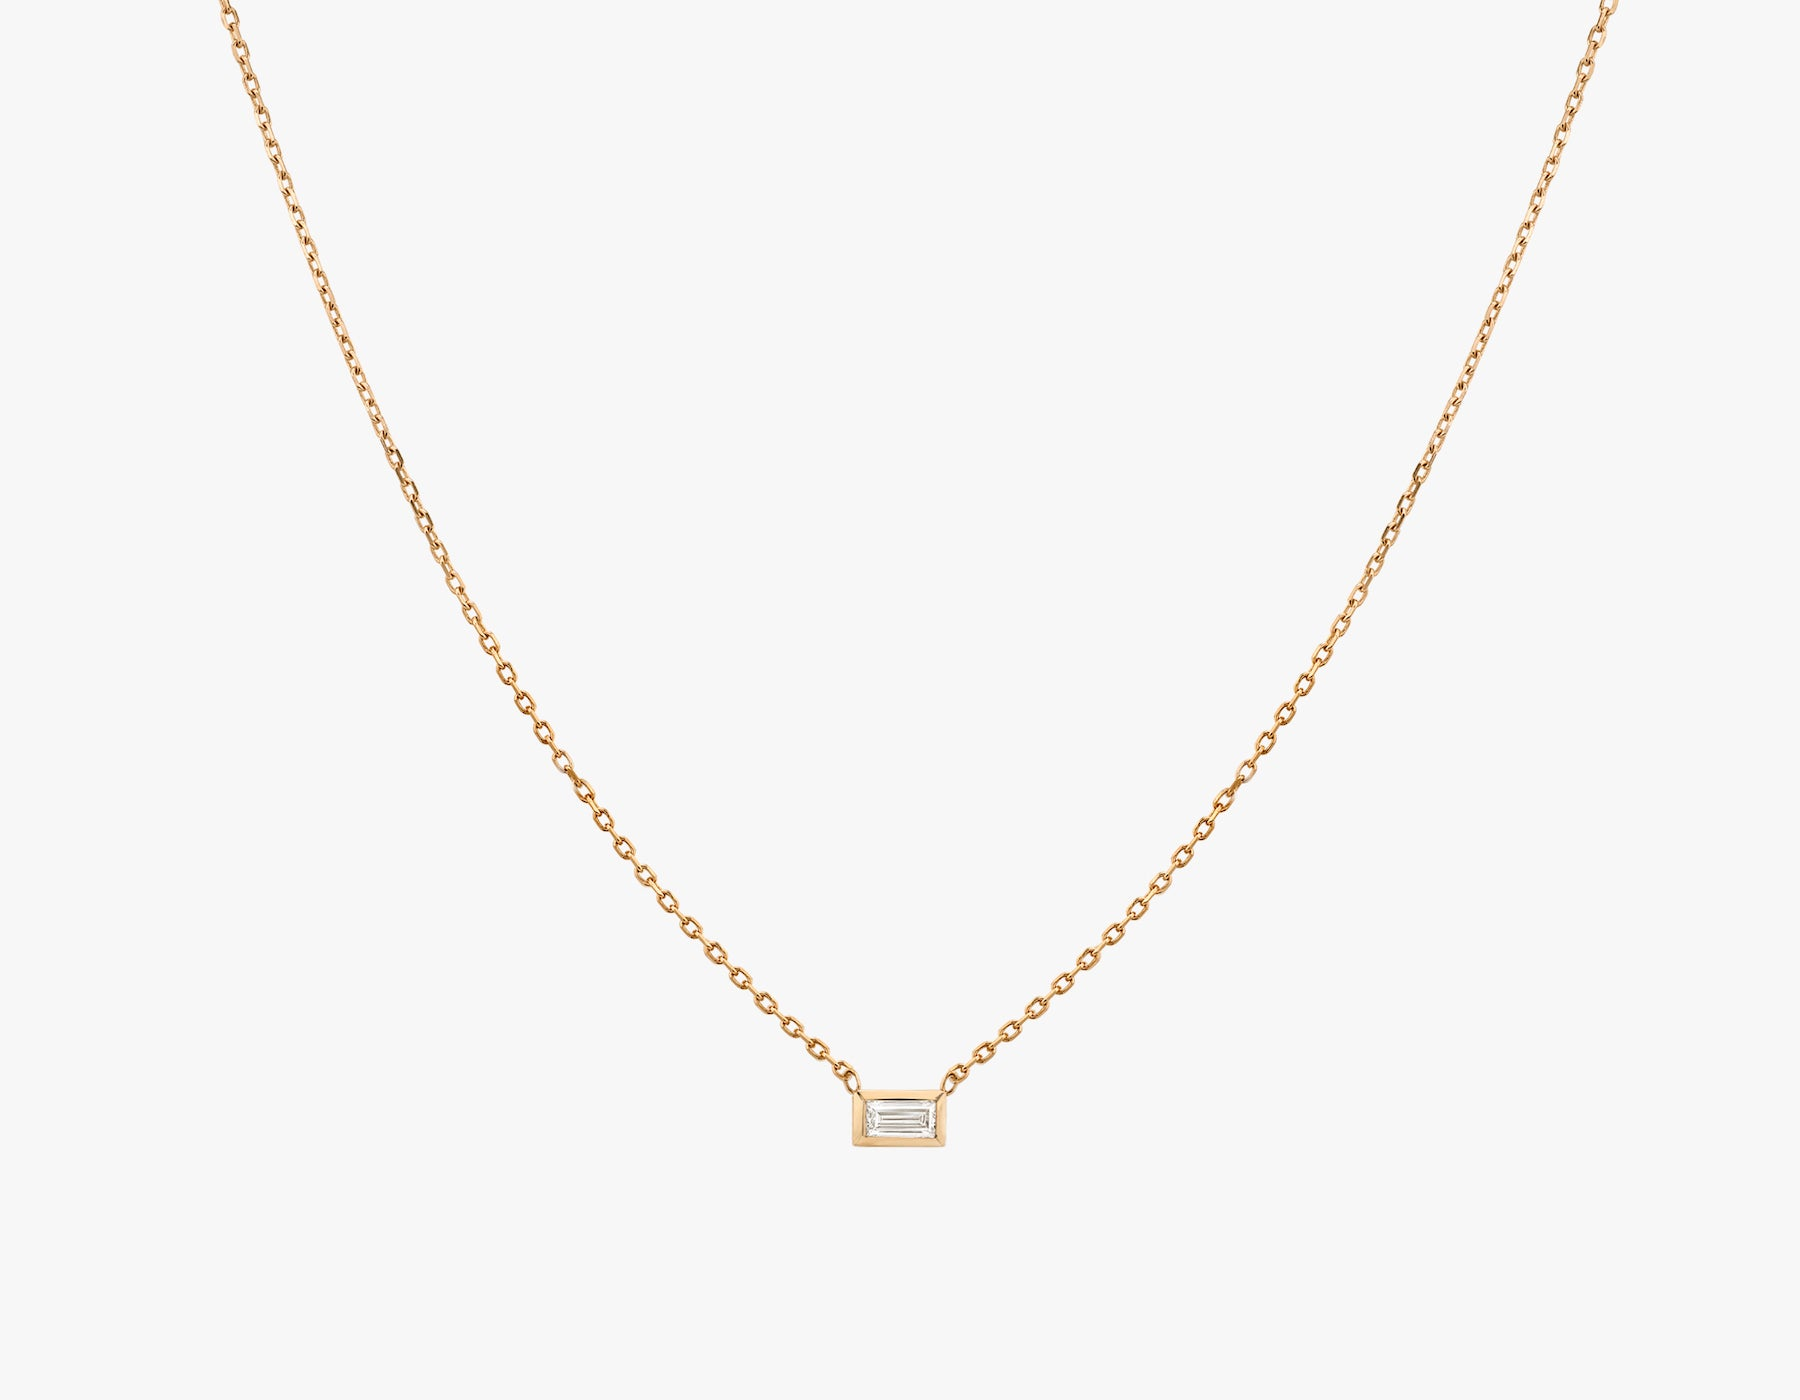 Vrai simple minimalist Baguette Diamond Bezel Necklace, 14K Rose Gold